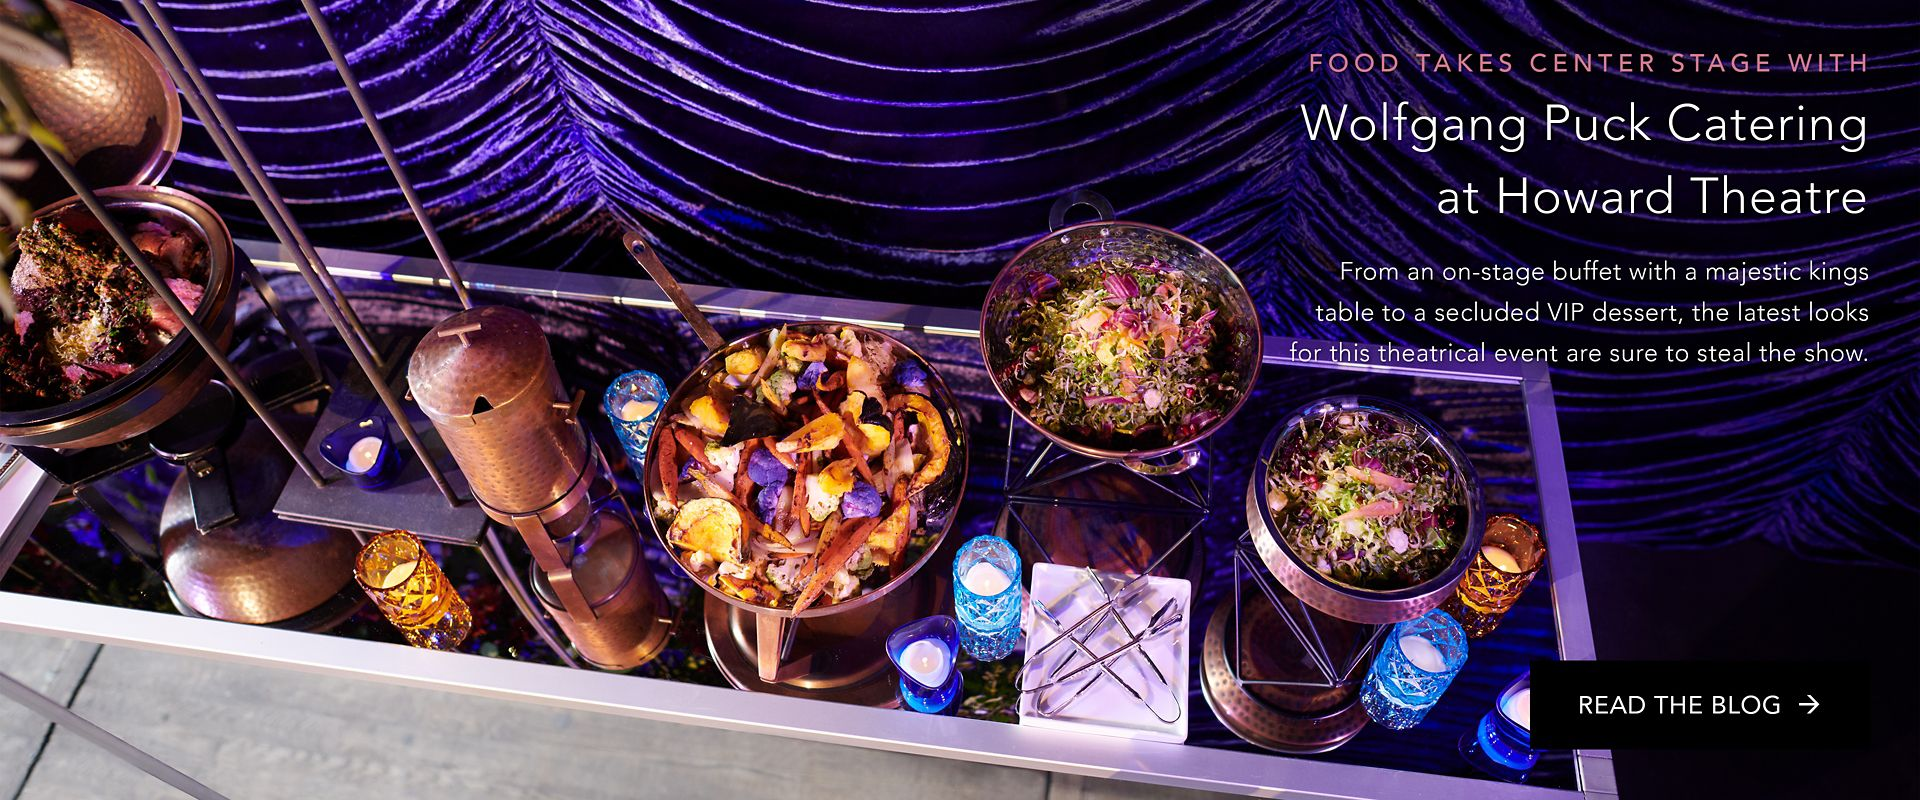 Food Takes Center Stage with Wolfgang Puck Catering at the Howard Theatre